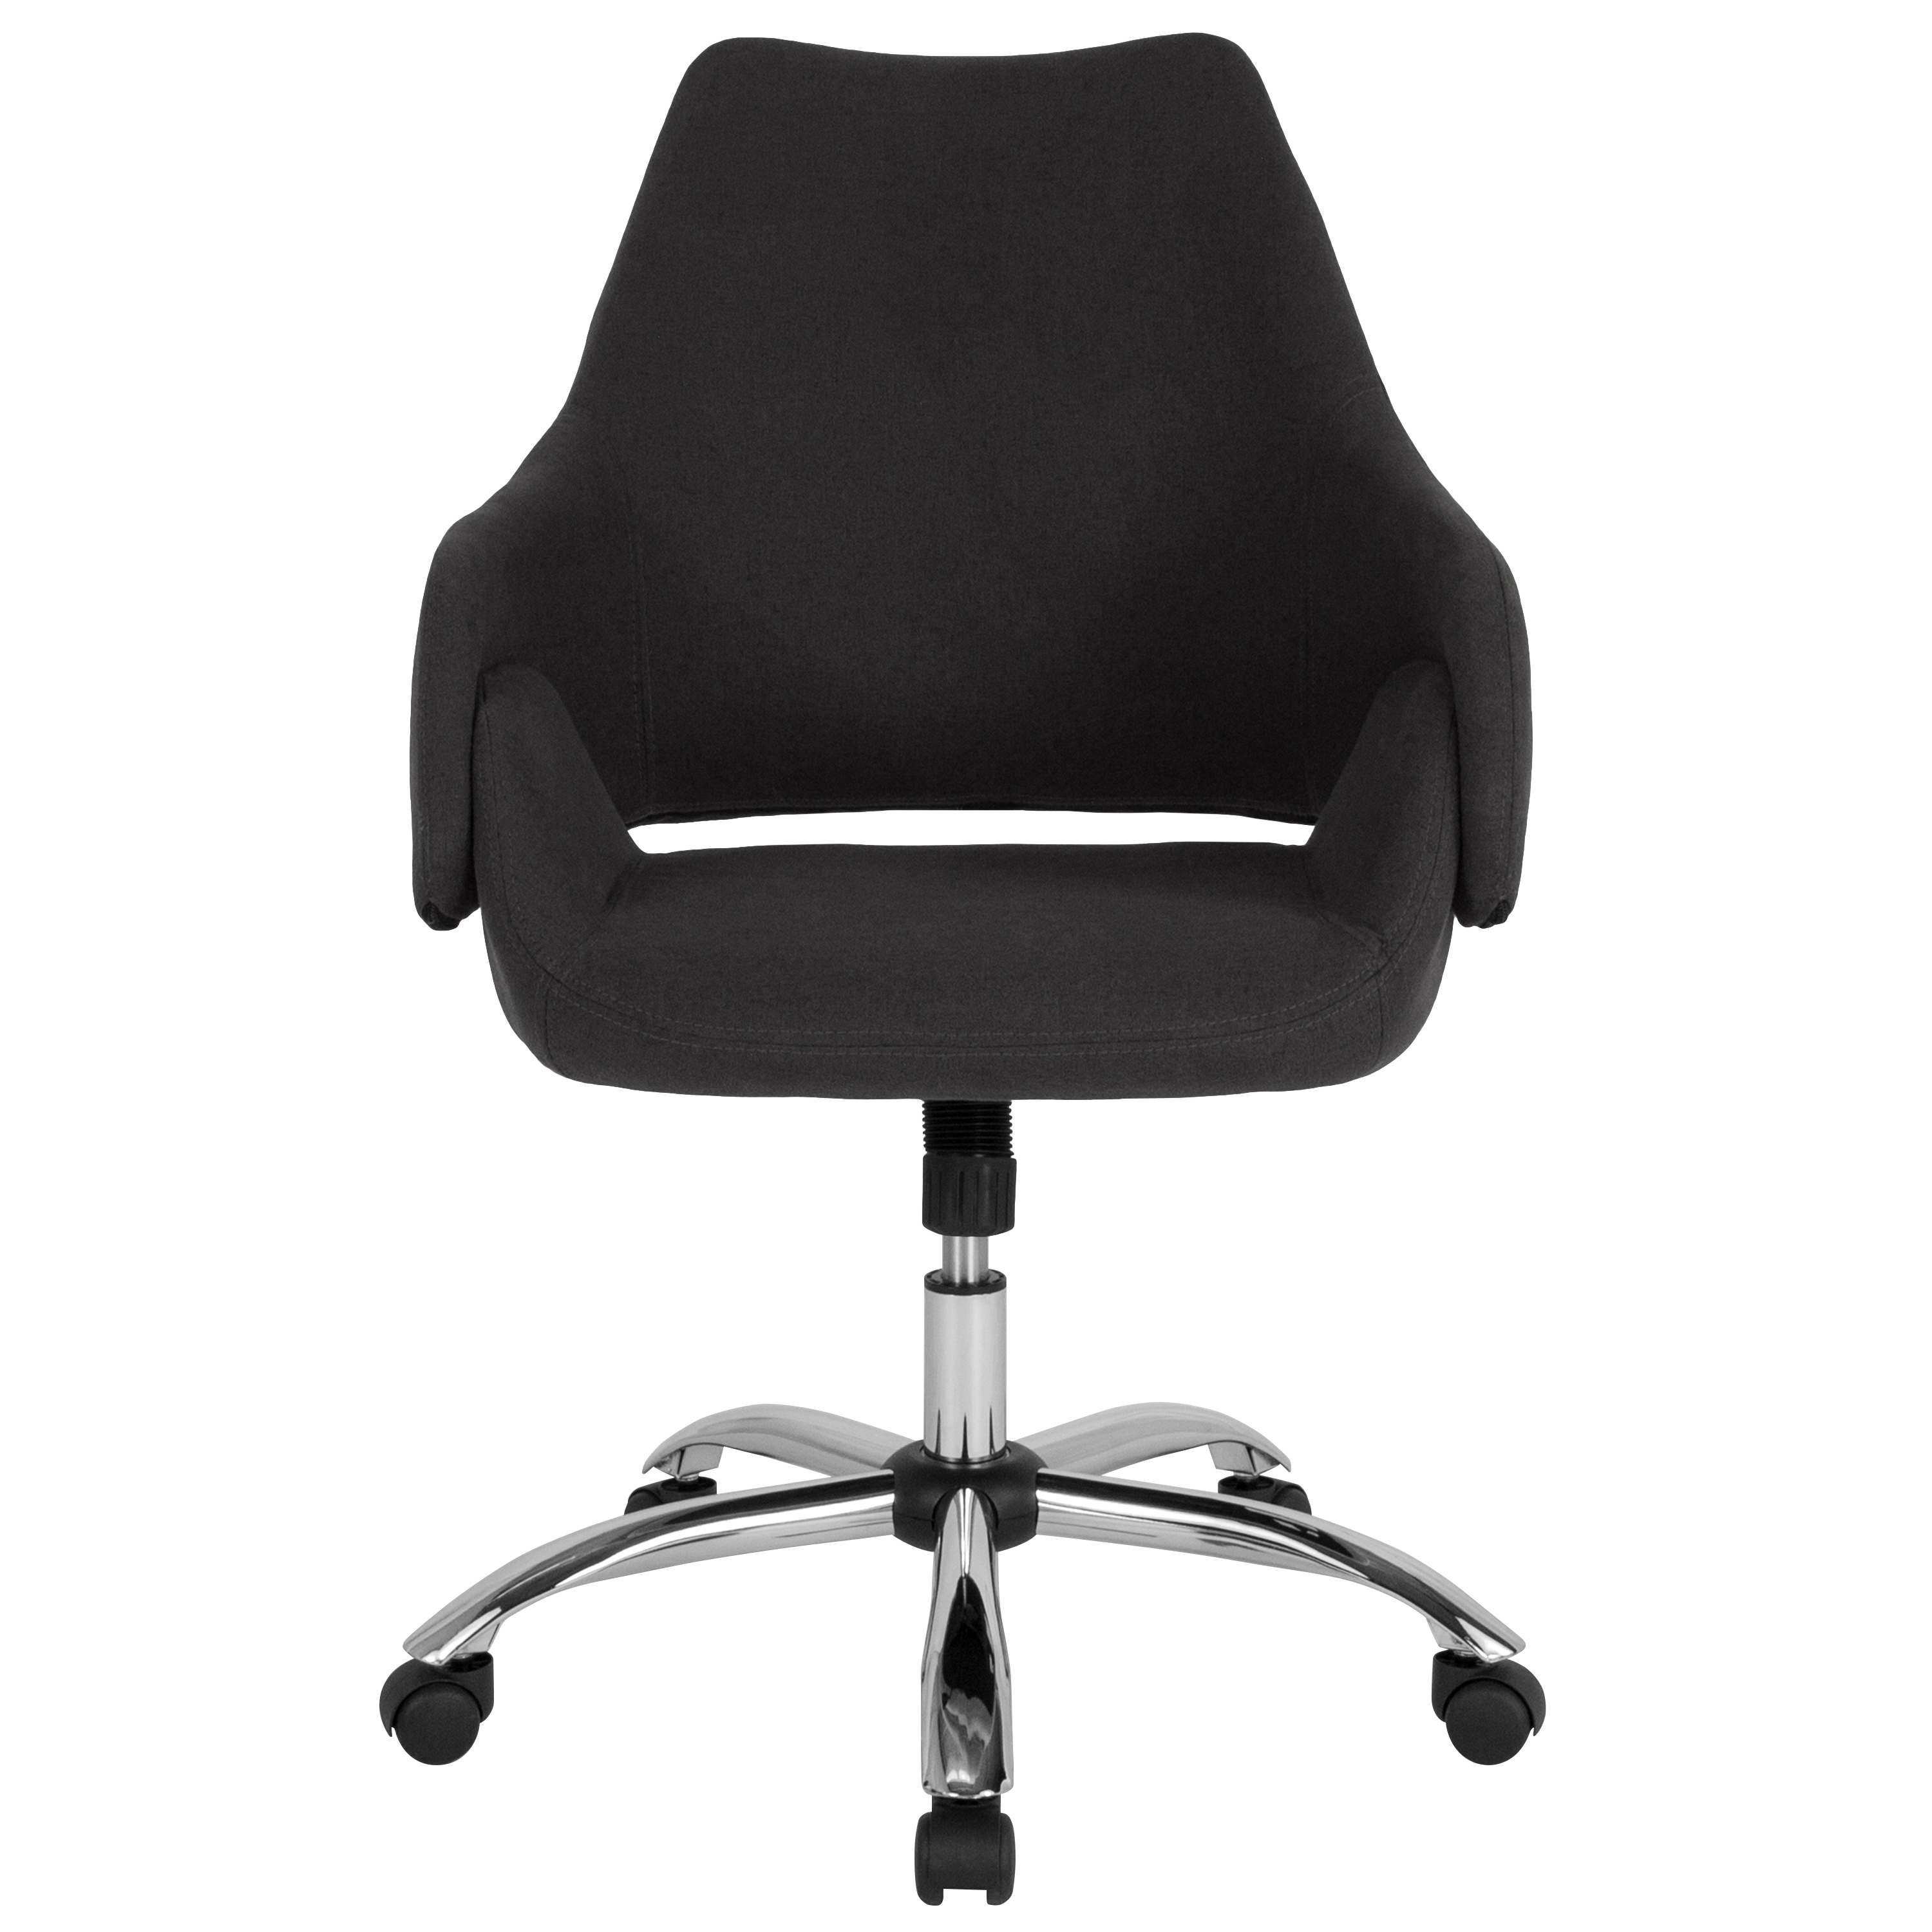 Home Office Mid-Back Office Chair With Wrap Style Arms